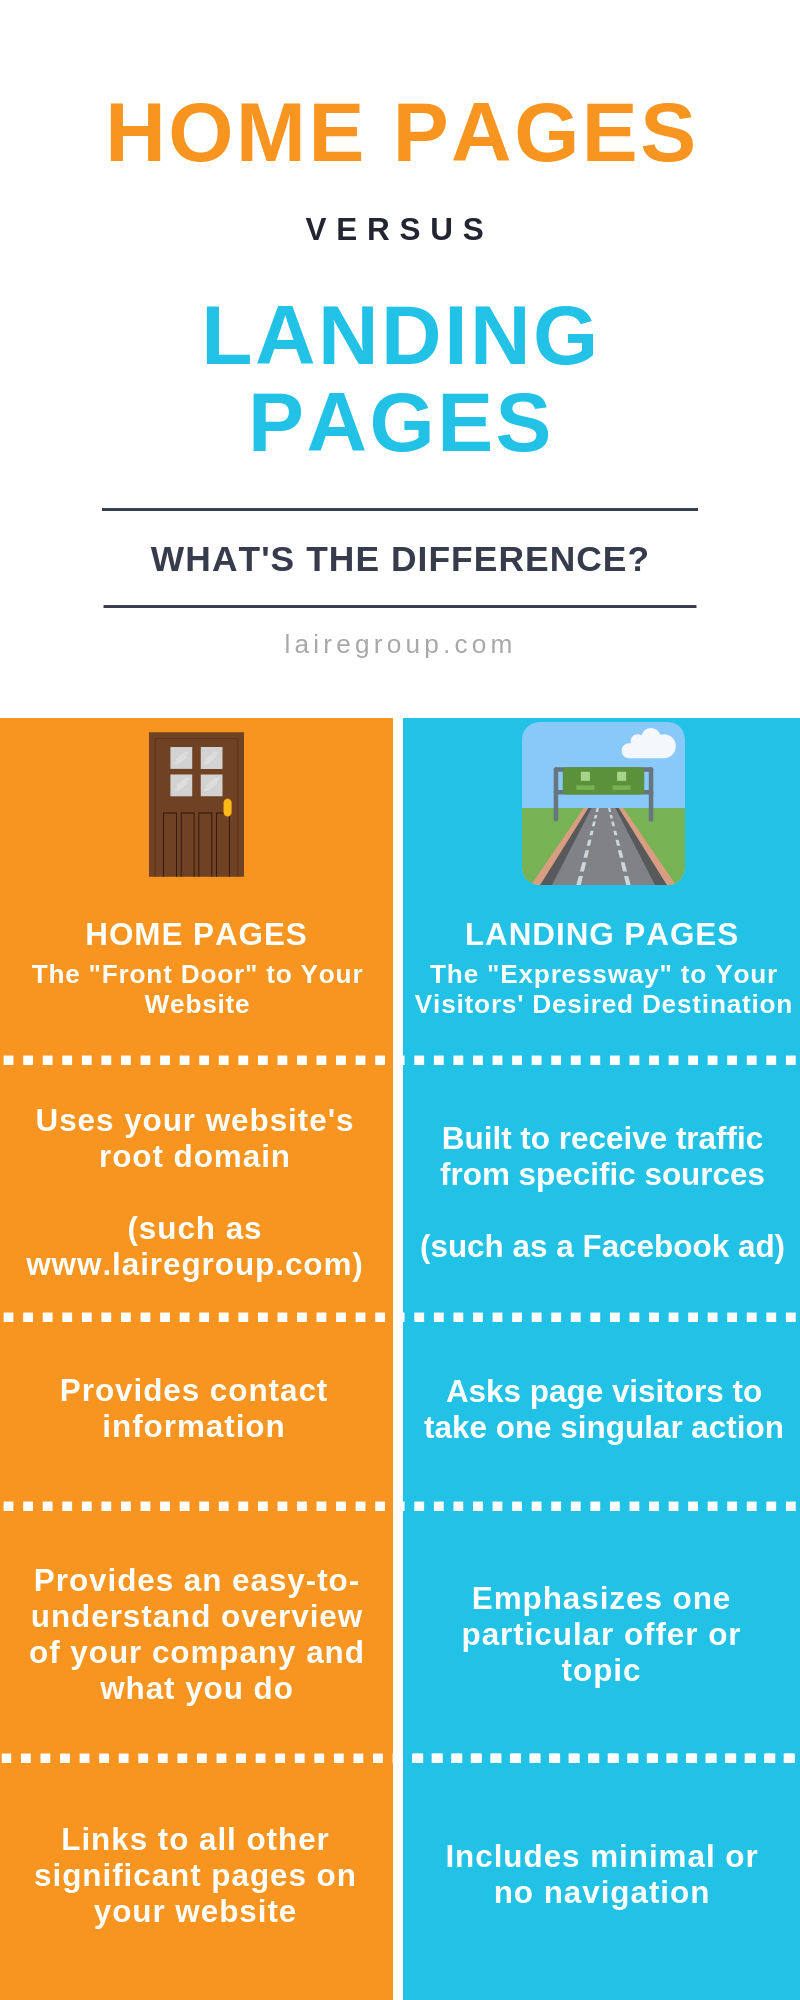 Home Page vs Landing Page Infographic - LG 3 (2)